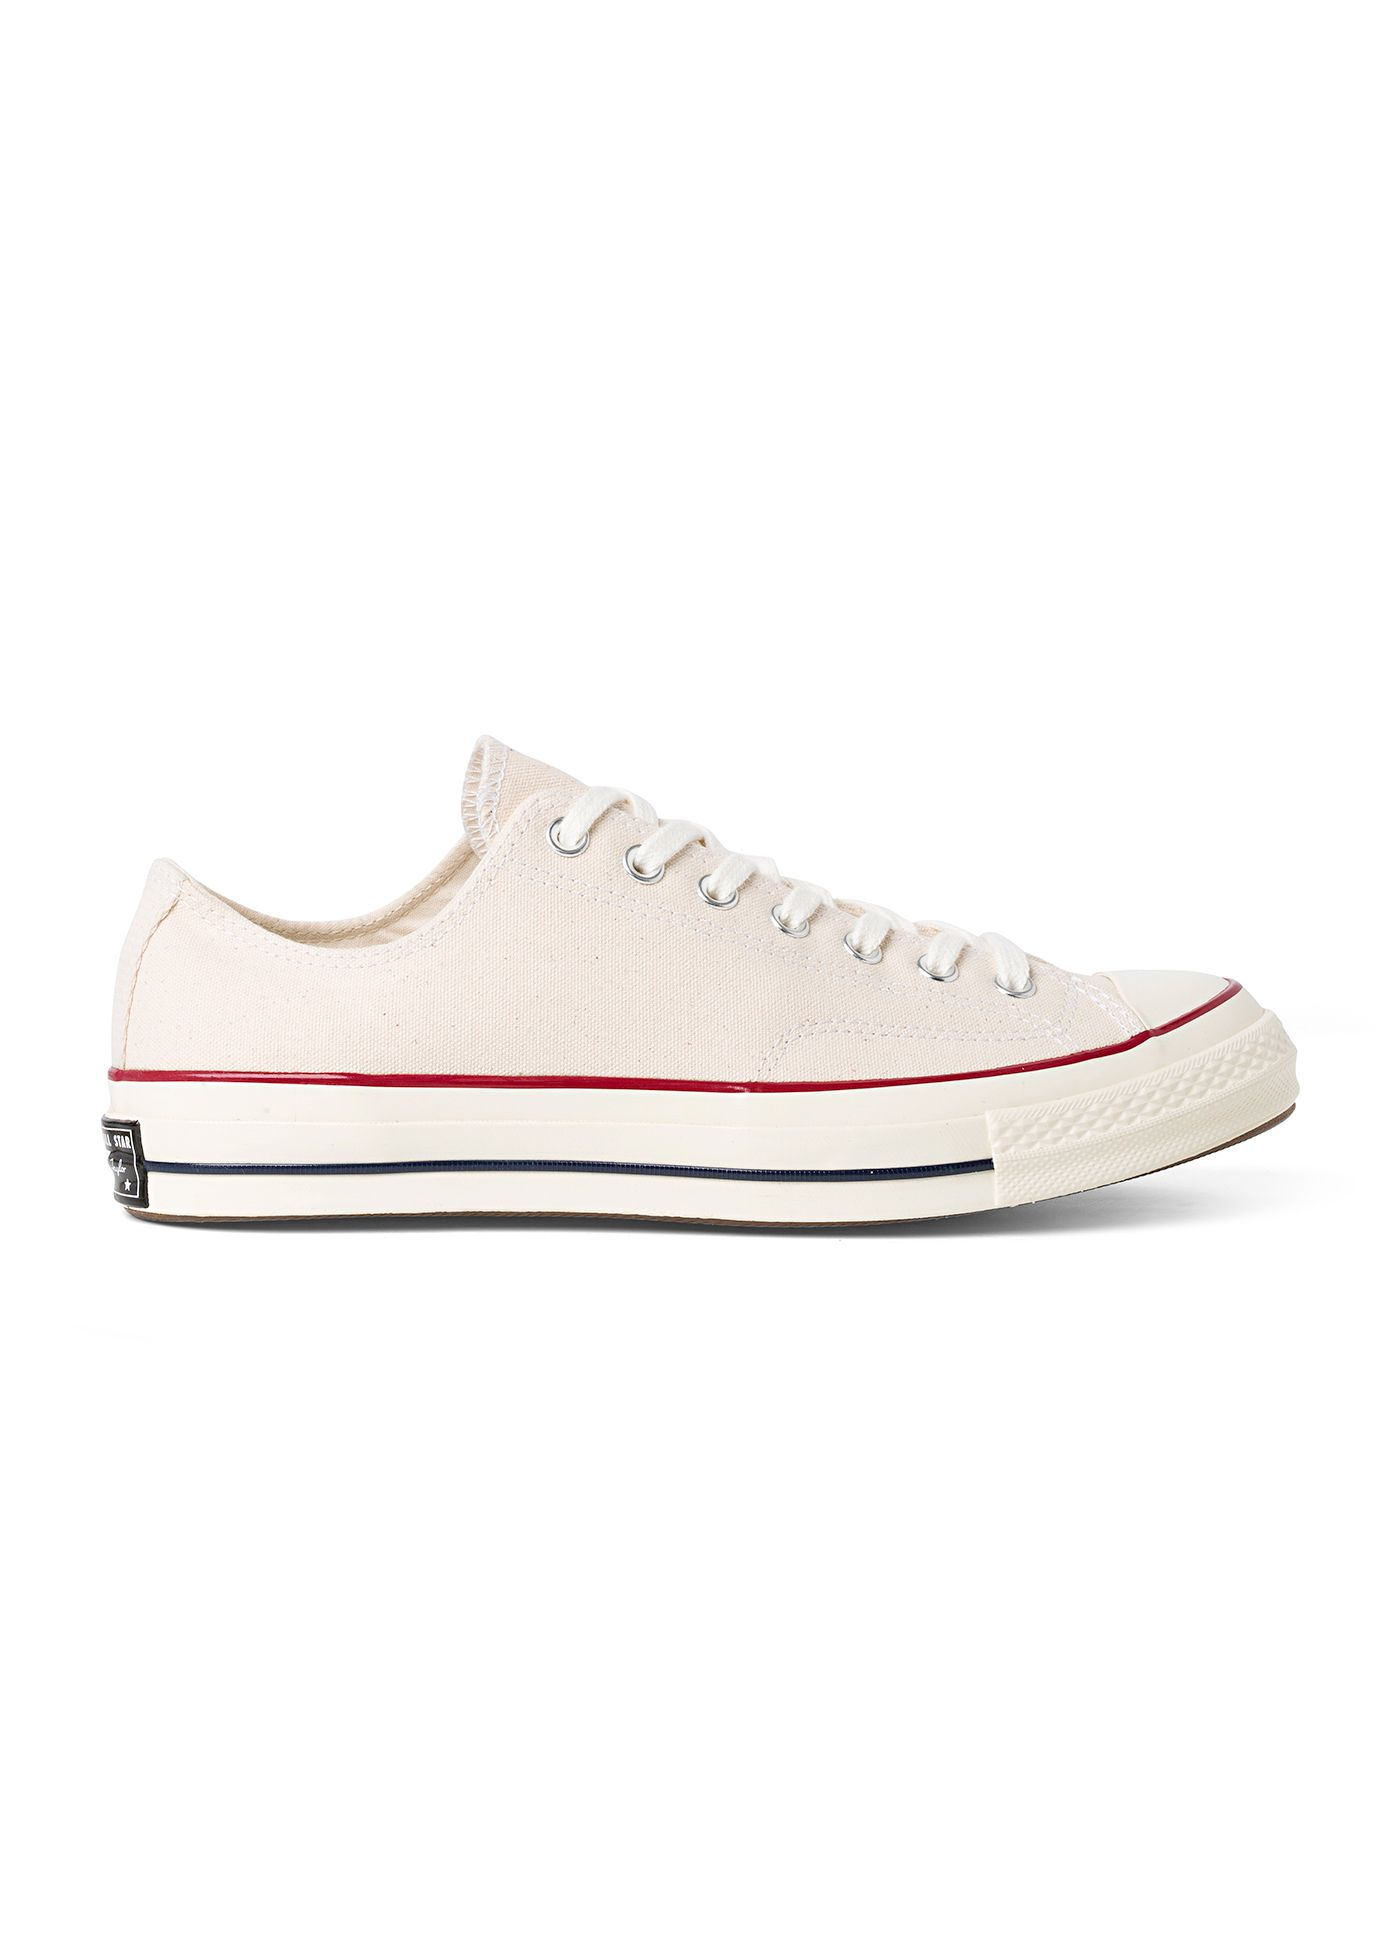 CHUCK 70 OX image number 0